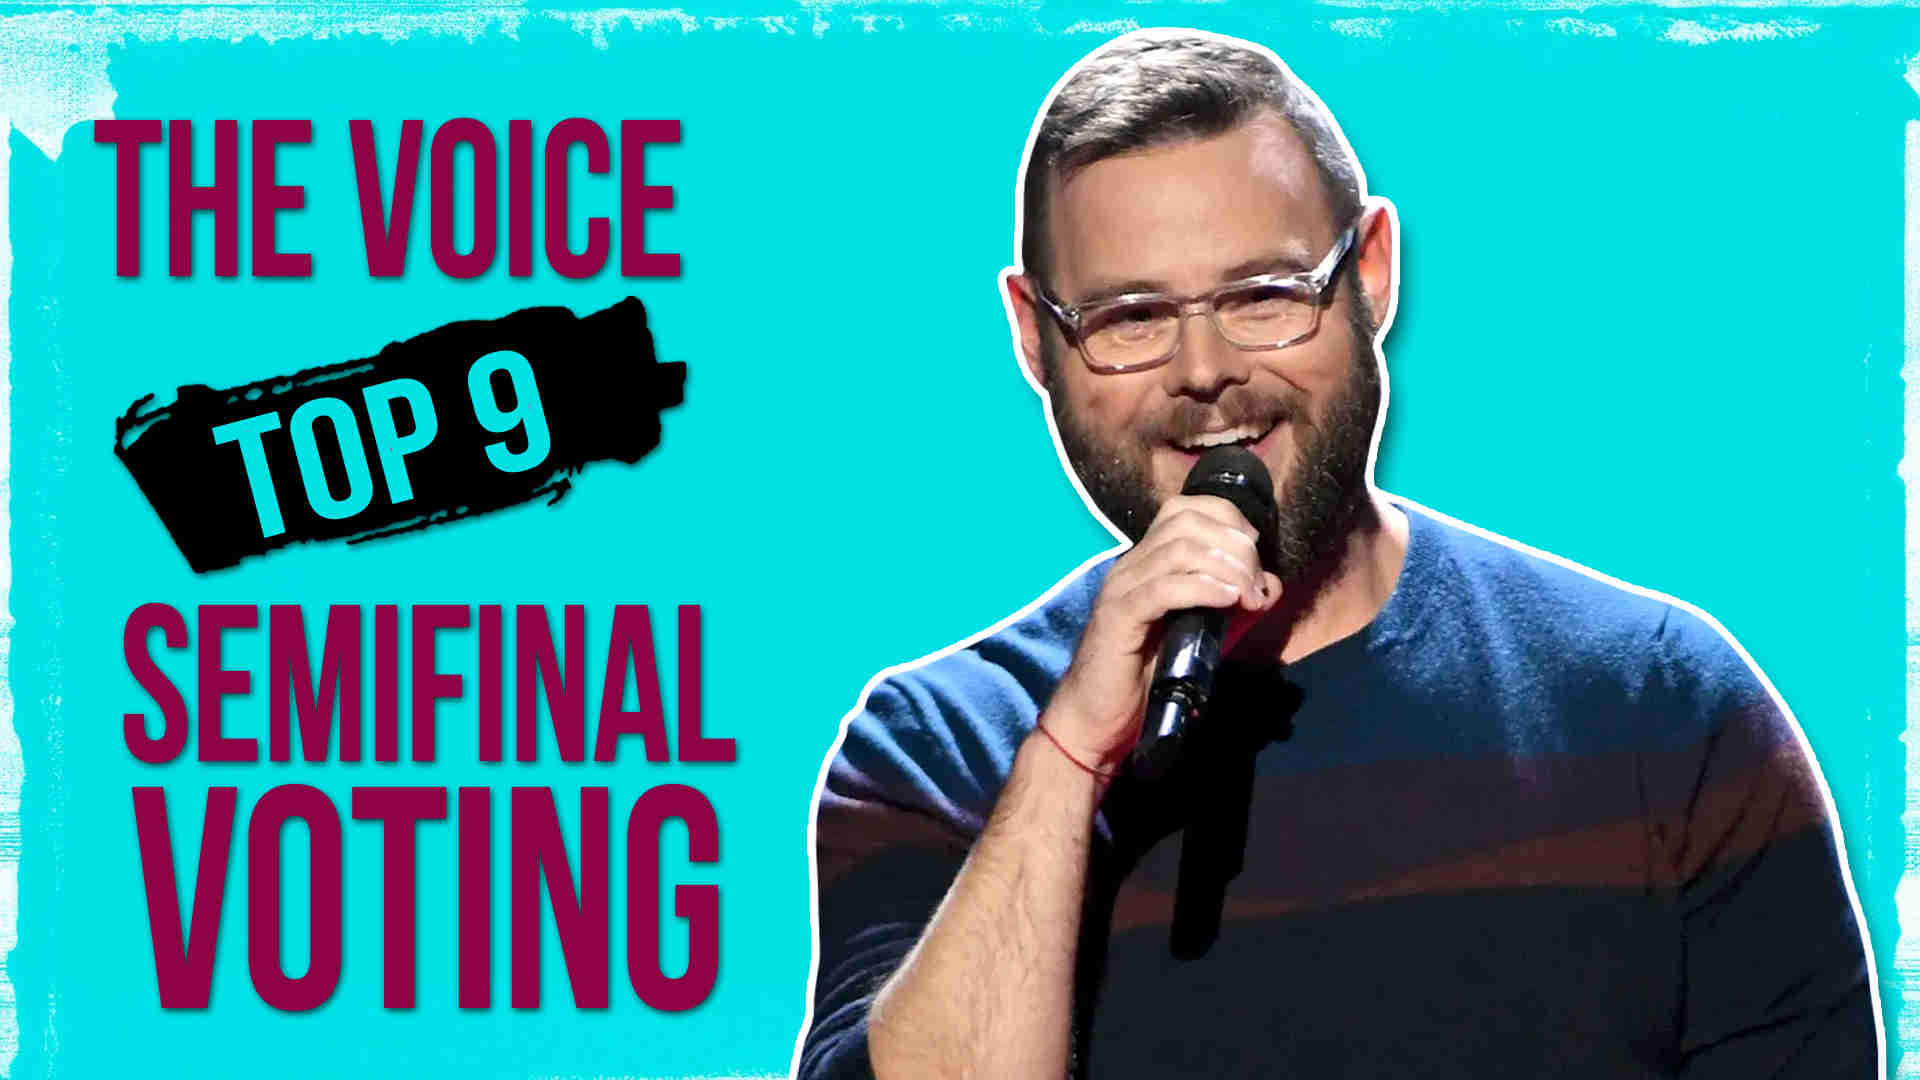 Vote Todd Tilghman The Voice 2020 Semifinals Voting Tonight on 11 May 2020